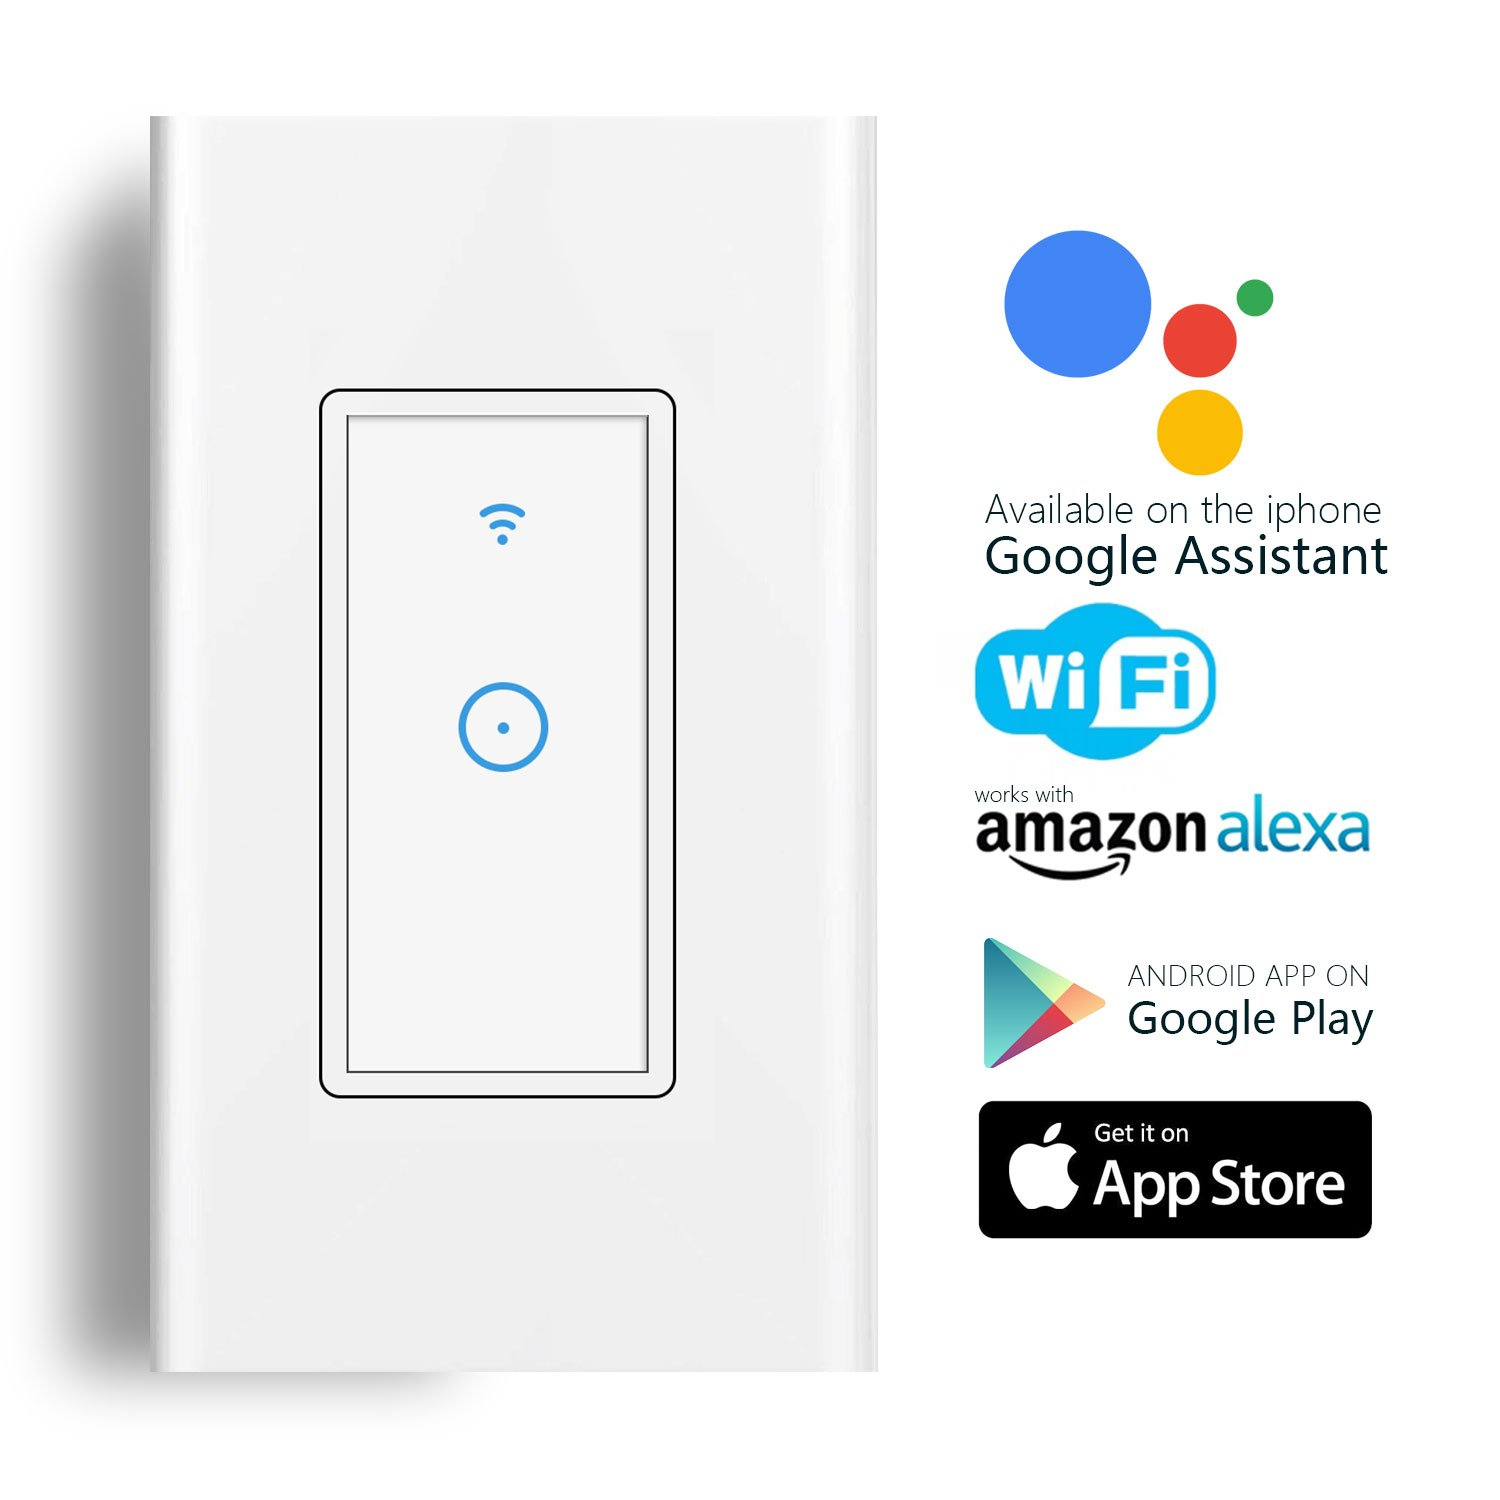 Smart Light Switch Wi Fi In Wall Wireless Compatible Hope These Wiring Diagrams Have Helped You Your 4 With Amazon Alexa Remote Control Fixtures From Anywhere Timing Function